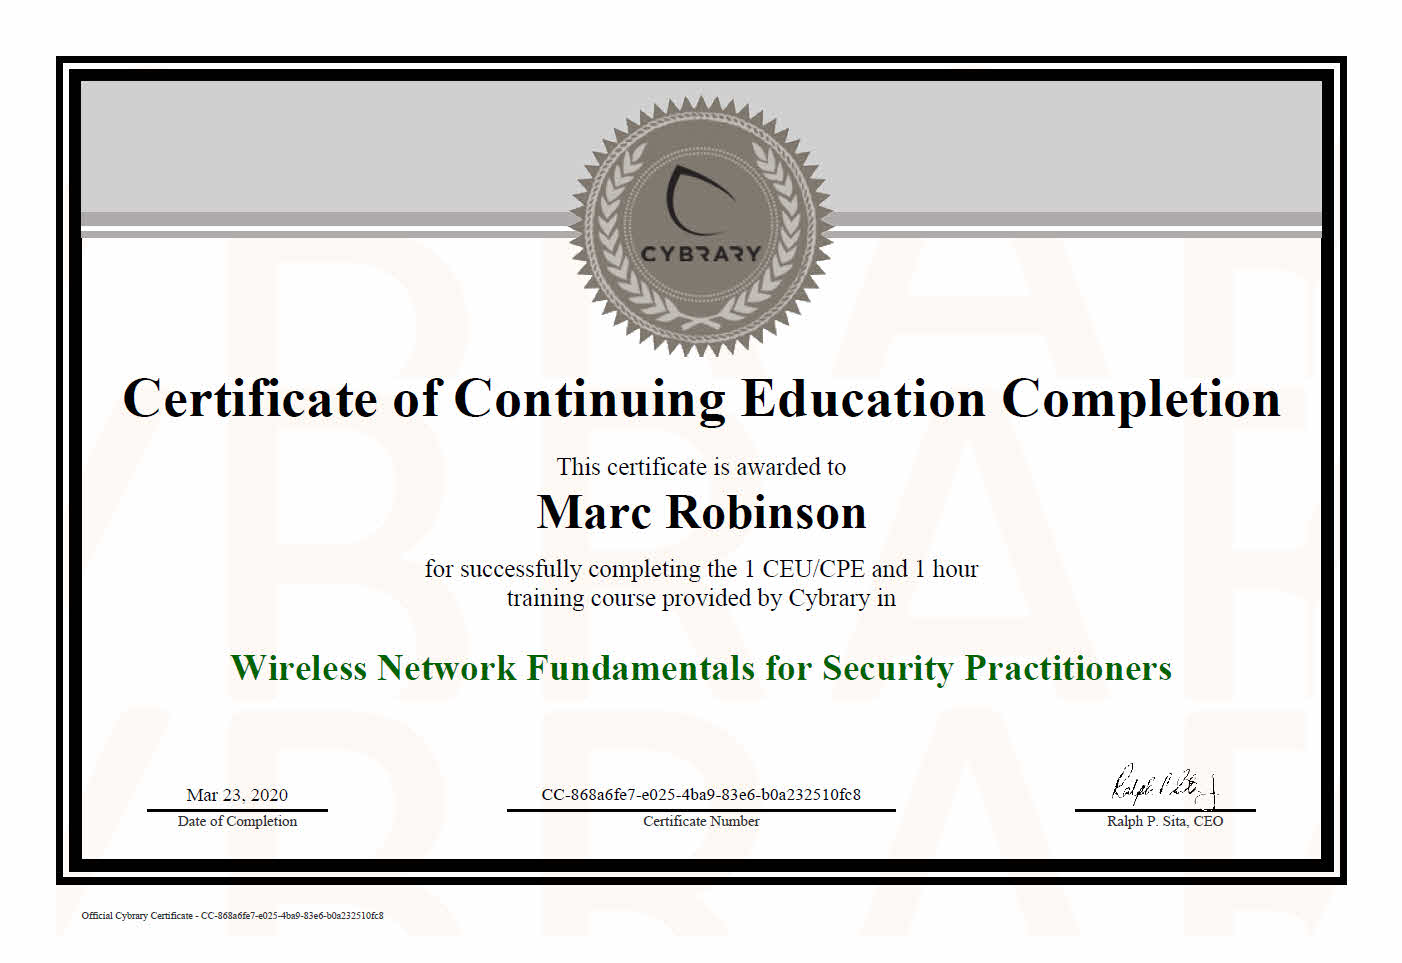 Continuing Education Certificate in Wireless Network Fundamentals for Marc Robinson